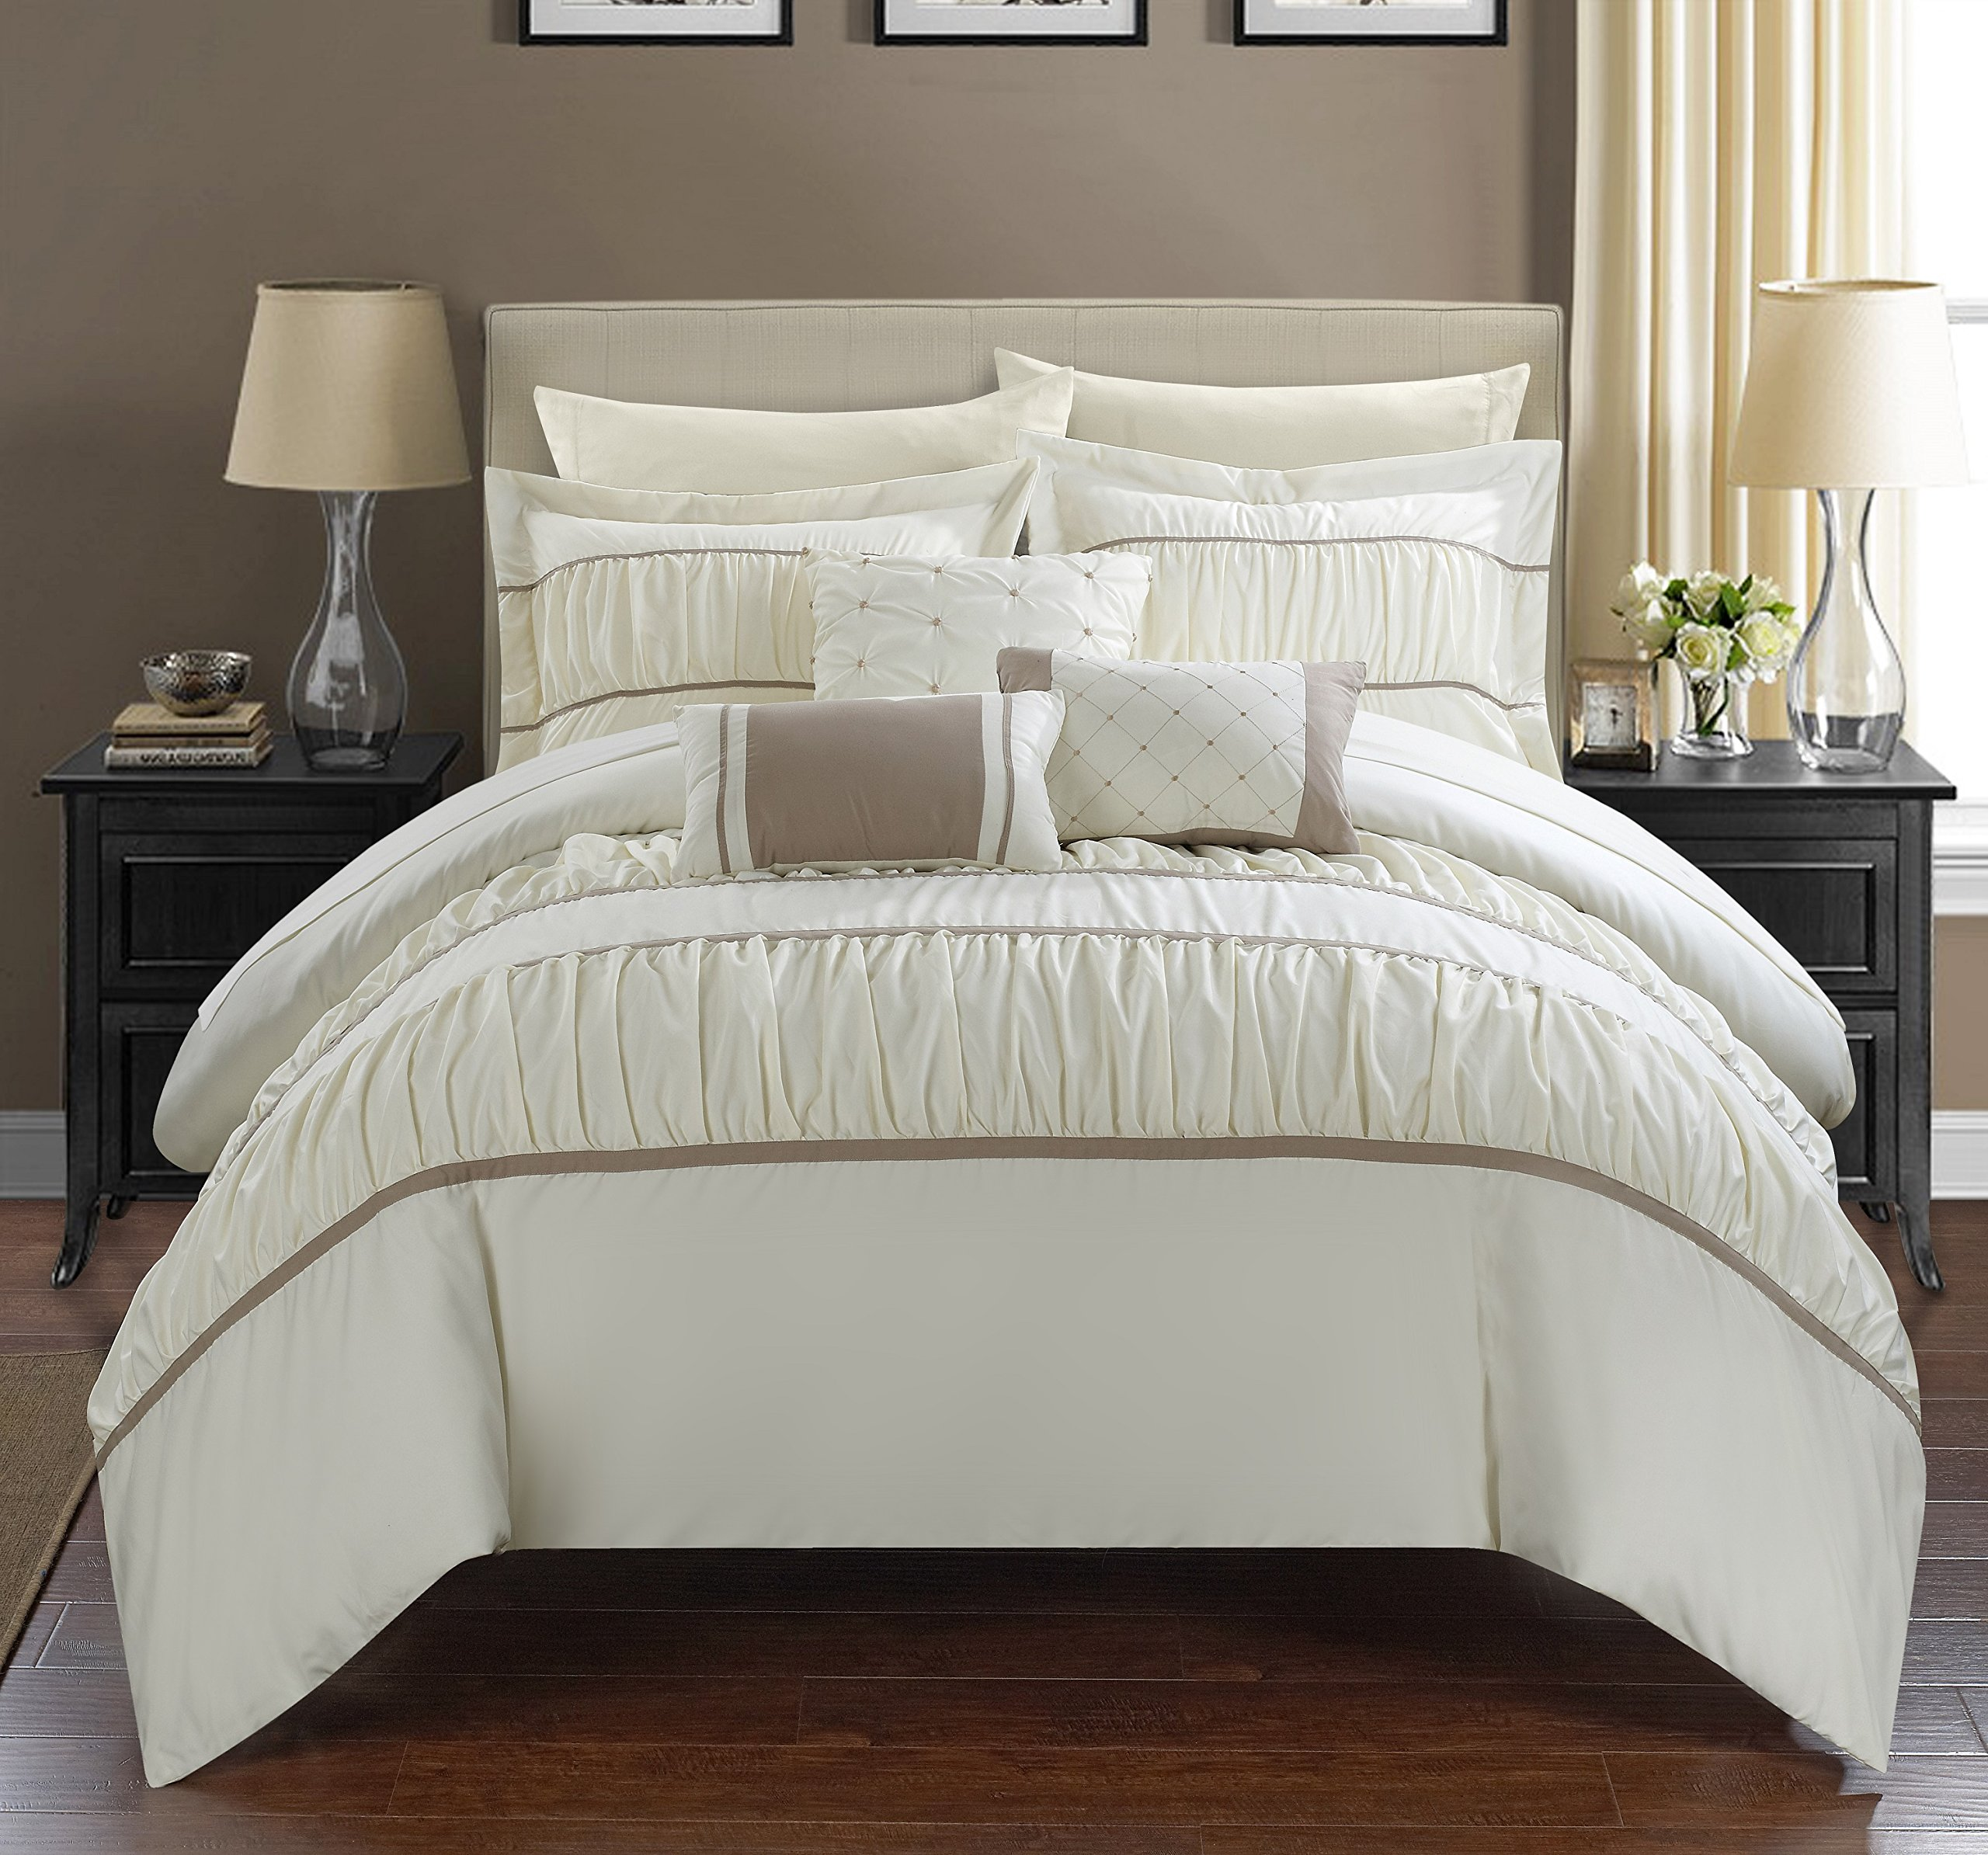 Chic Home Cheryl 10 Piece Comforter Set Complete Bed in a Bag Pleated Ruched Ruffled Bedding with Sheet Set And Decorative Pillows Shams Included, King Beige